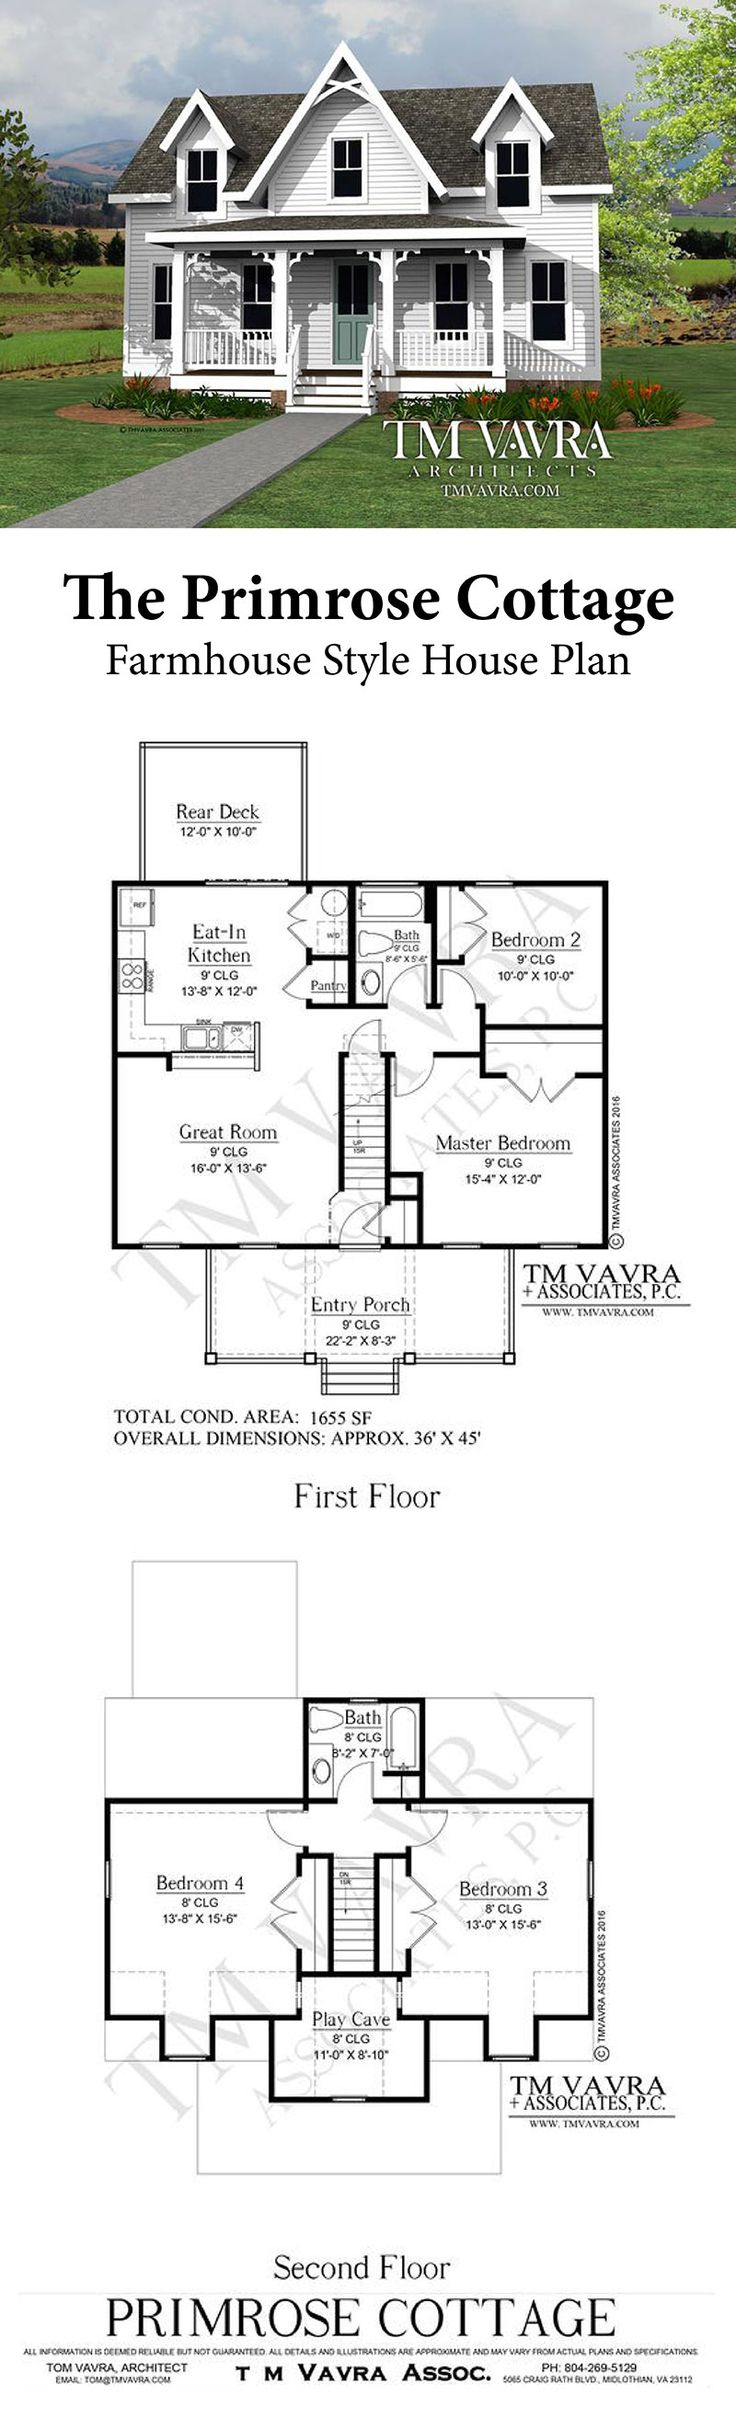 The Primrose Cottage house plan is a charming home design that fits all your needs in less than 2,000 sq. feet! The master and second bedrooms are easily accessible on the first floor, while two large bedrooms and a play area upstairs will be perfect for the kids. The extra counter space and bar area in the kitchen make this home great for entertaining. You can enjoy the summer breeze on either the covered front porch or the rear deck. We are happy to customize this home plan for your needs.